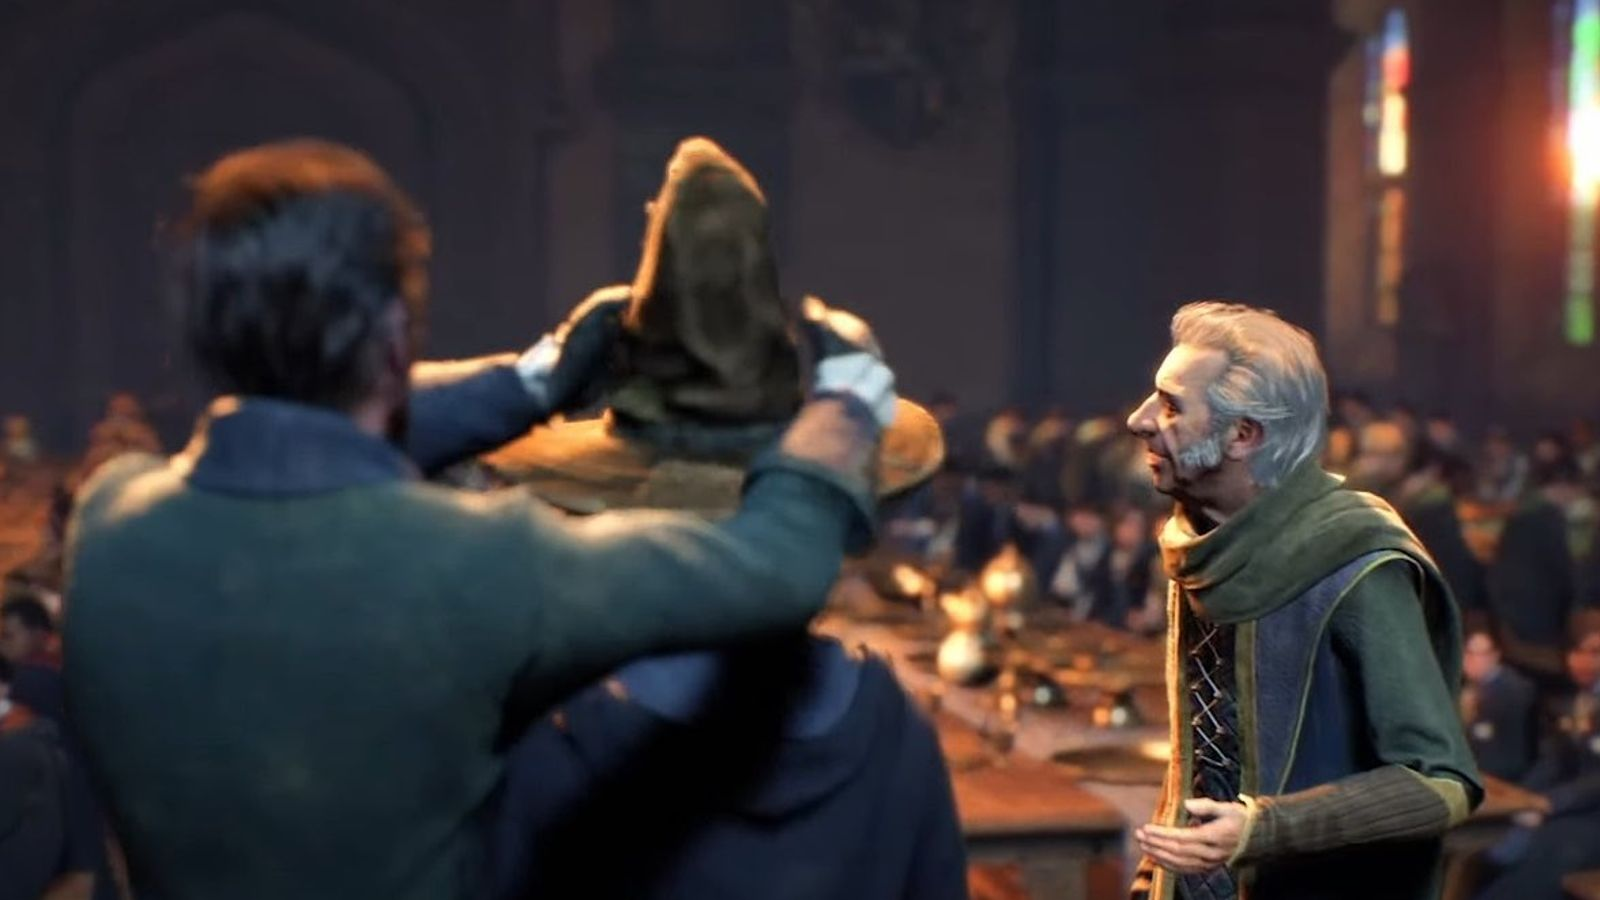 PS5: Sony confirms £449 price and 19 November release, alongside game set in Hogwarts in 1800s